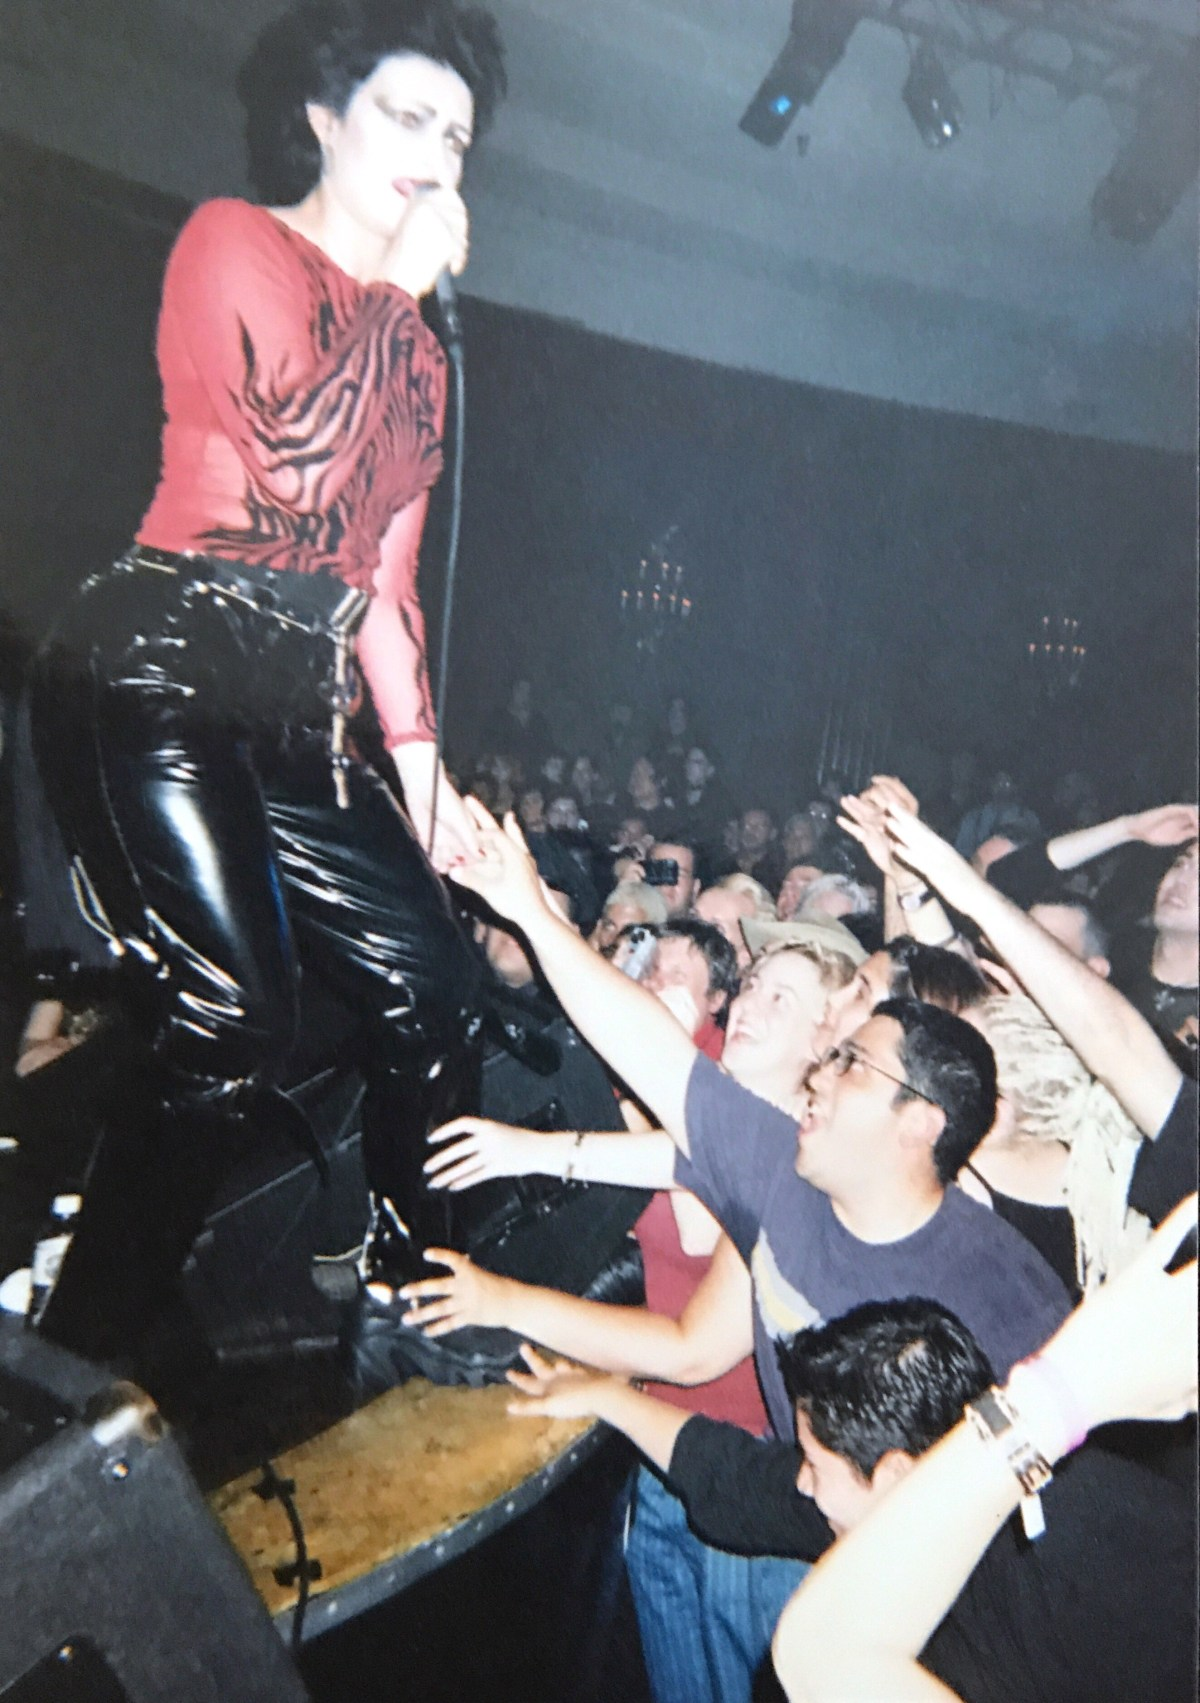 Siouxsie Sioux plays Coven 13 in the '90s.; Credit: Jason Lavitt